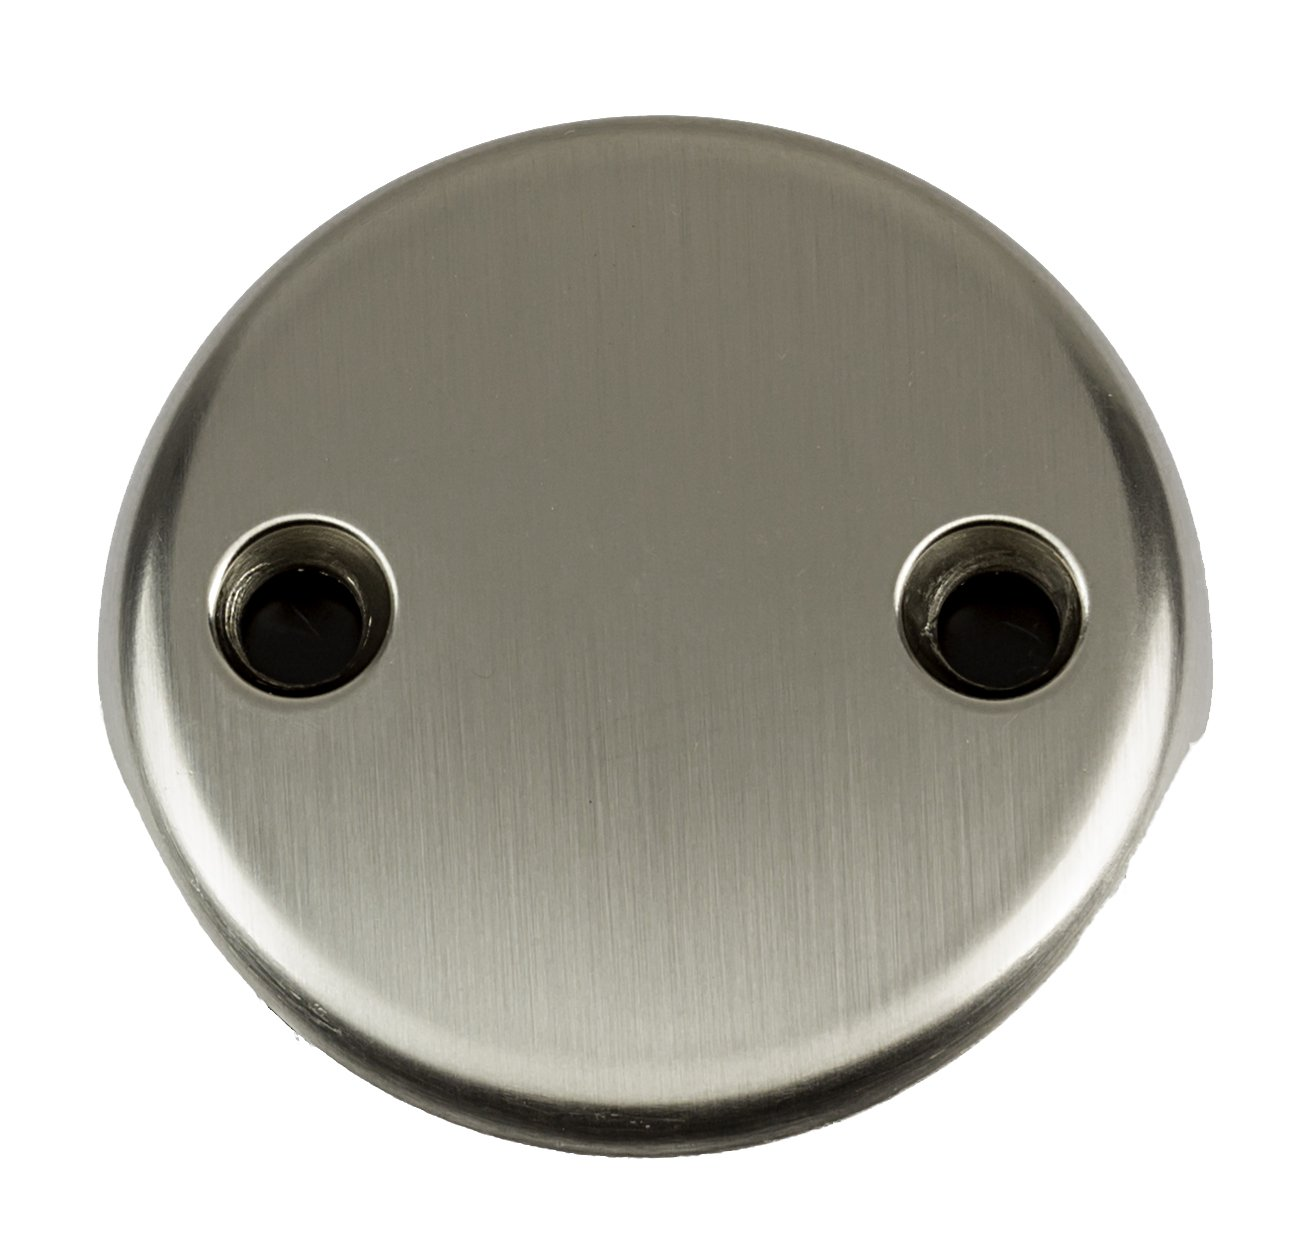 2-Hole Overflow Face Plate with Screws- PVD Stainless Steel